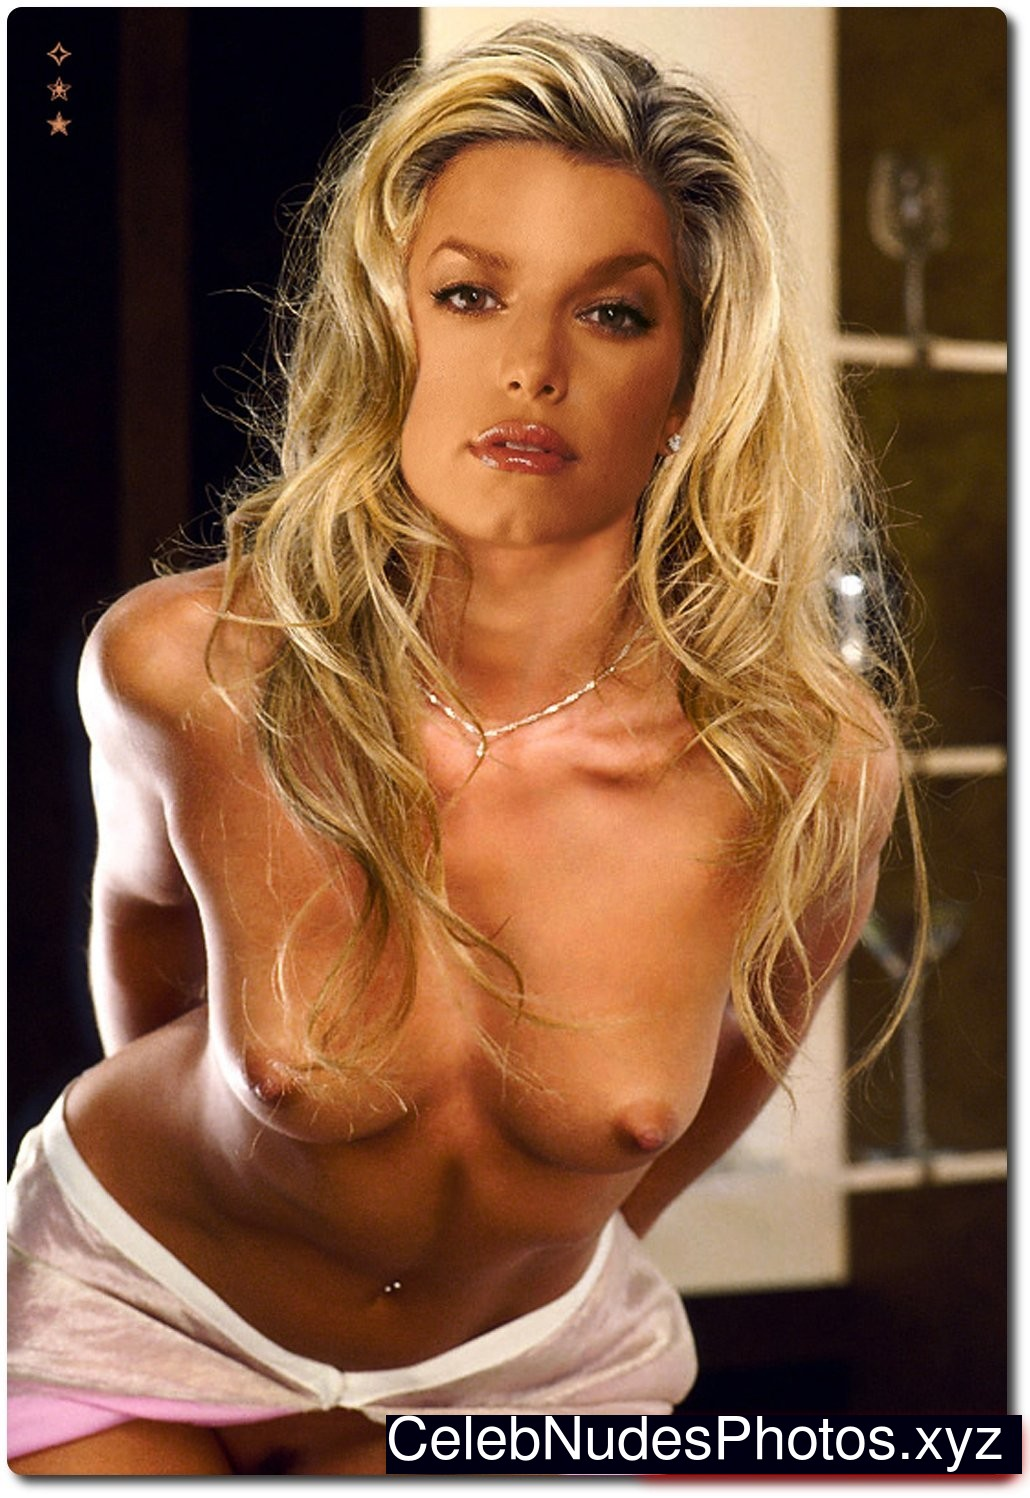 Young jessica simpson nude